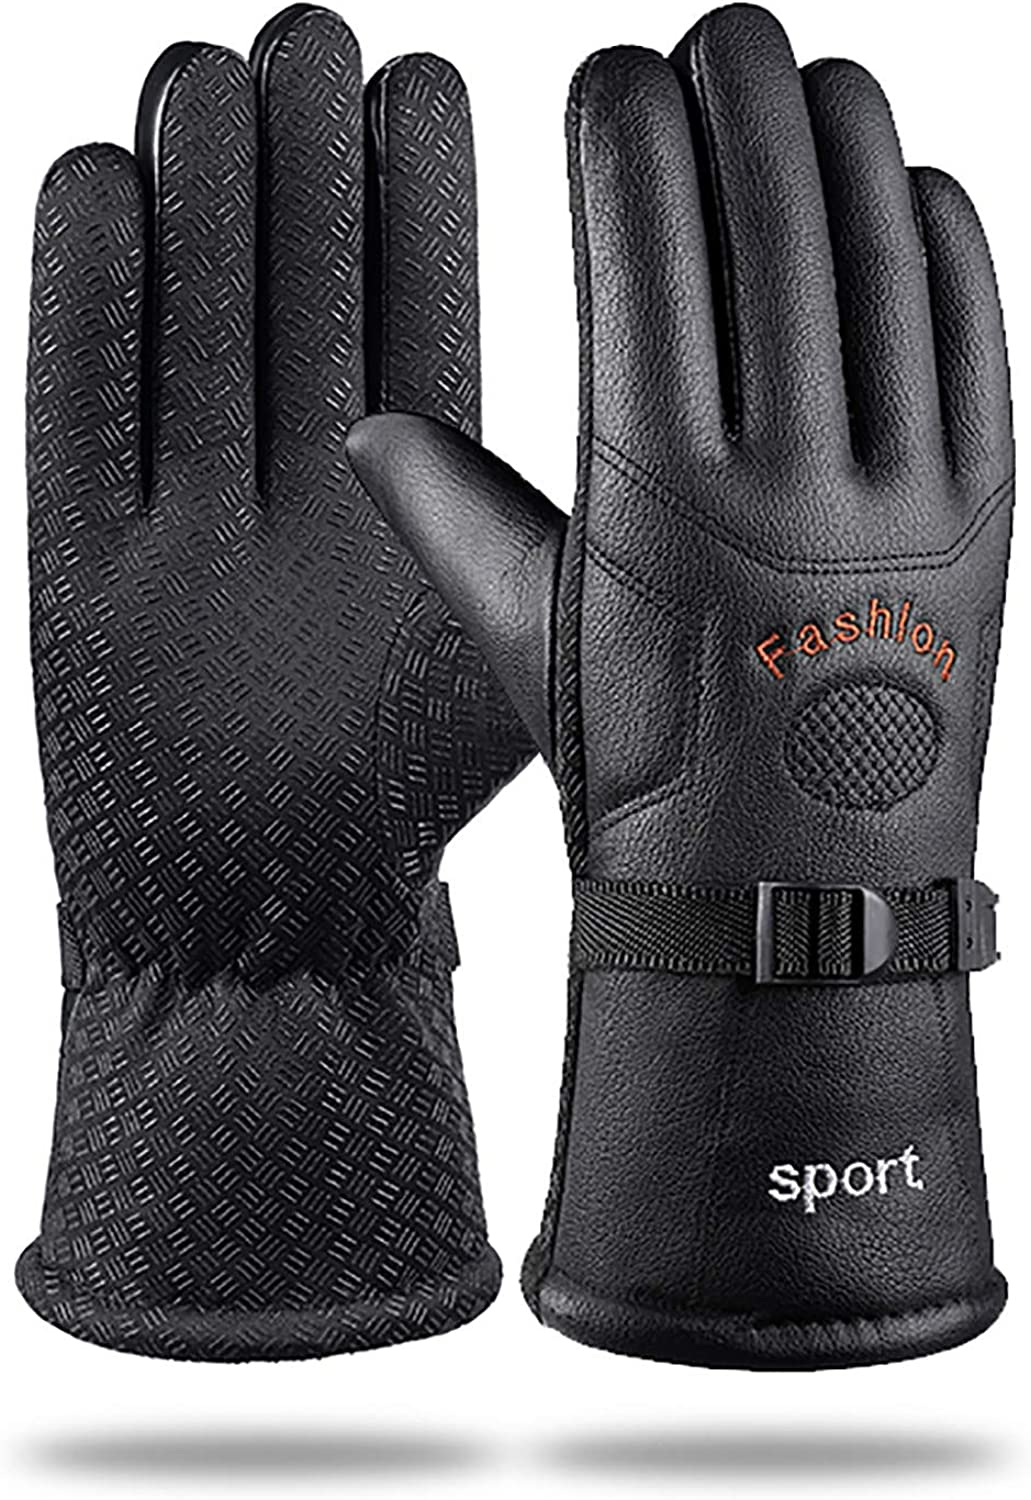 Ski Gloves,Men and Women to Keep Warm in Winter,Cutdoor Waterproof Sport and Cycling Gloves